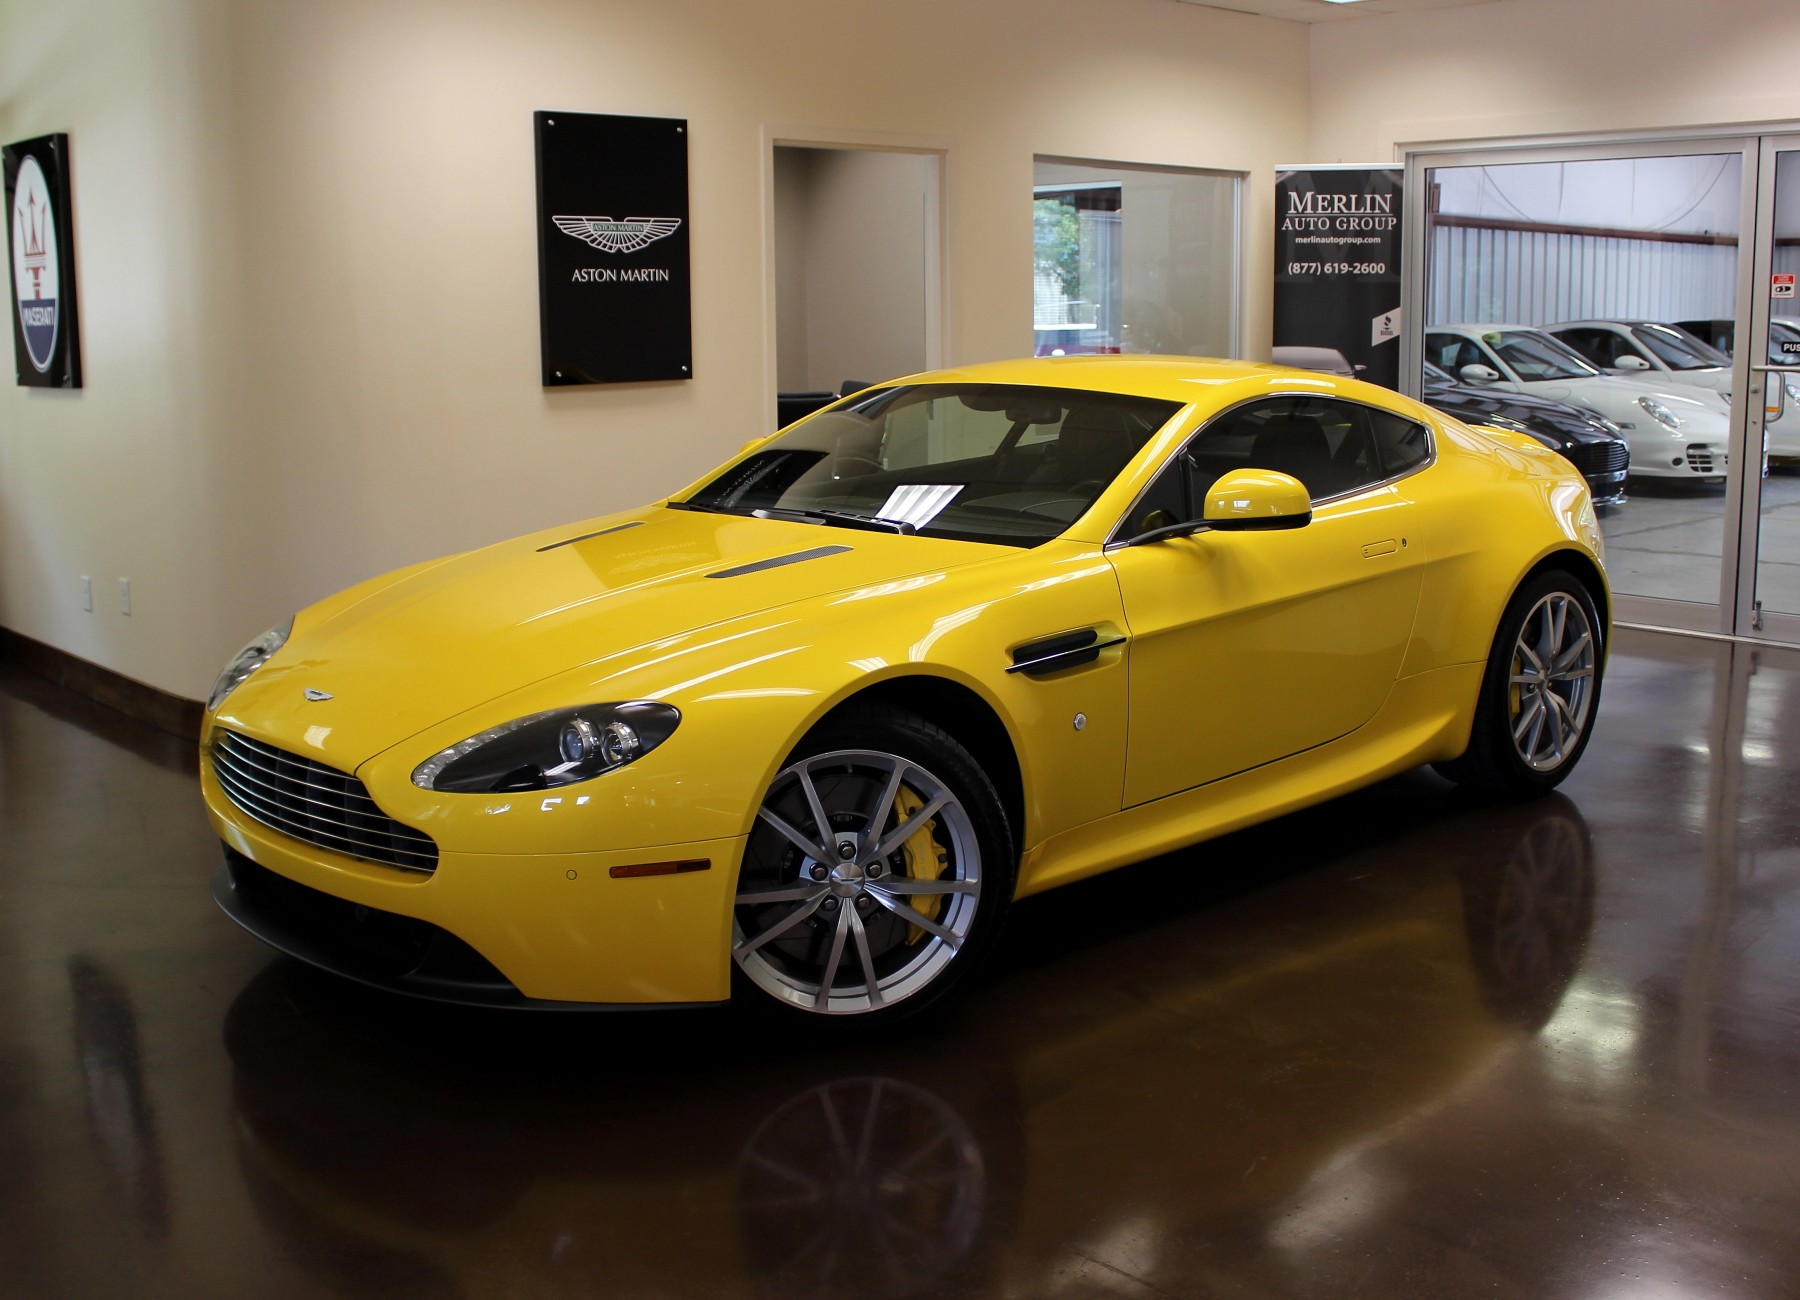 used 2012 aston martin v8 vantage stock p2851 ultra luxury car from merlin auto group. Black Bedroom Furniture Sets. Home Design Ideas